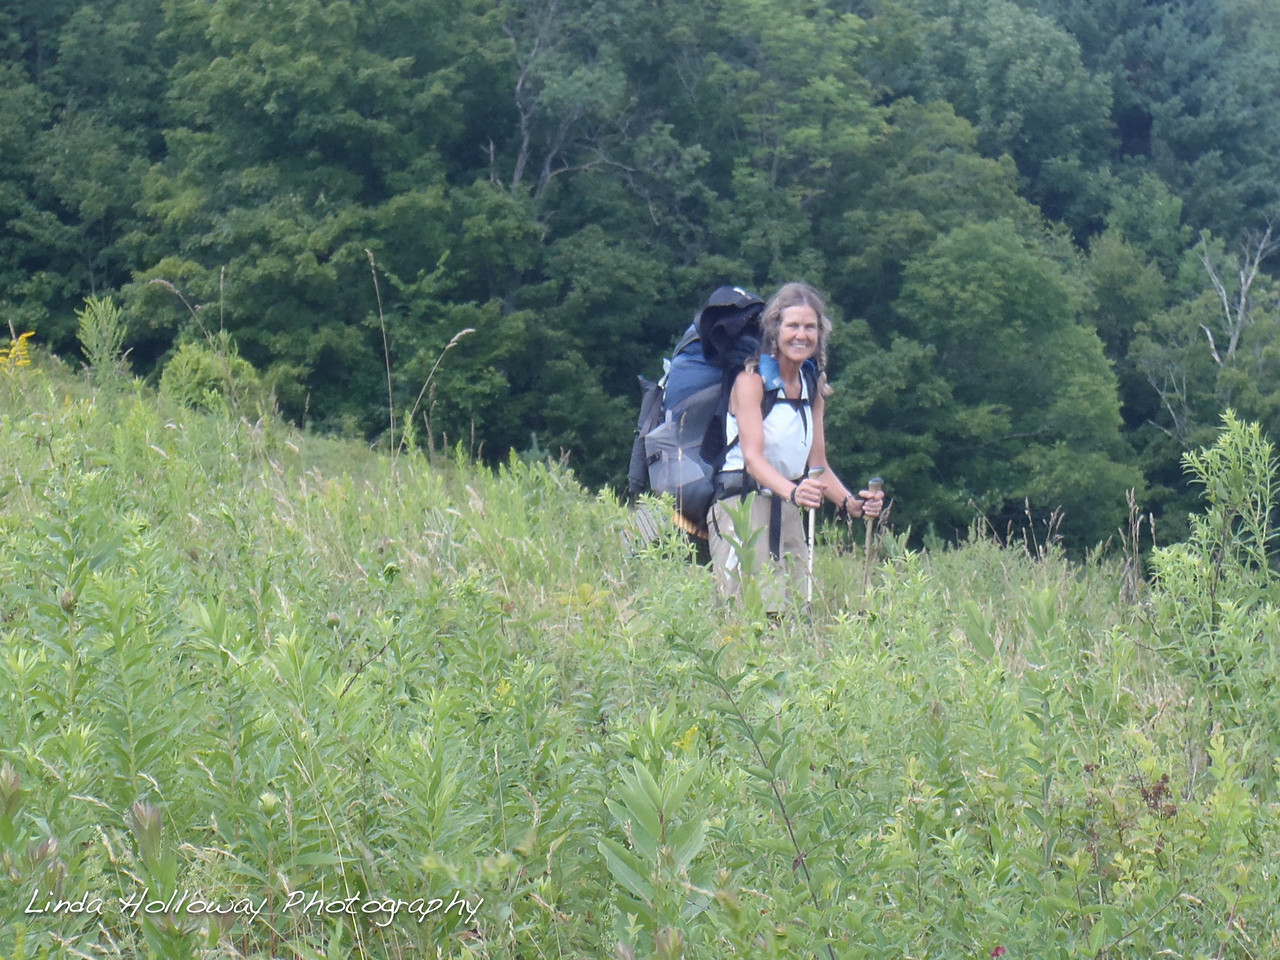 Hiking in the field.